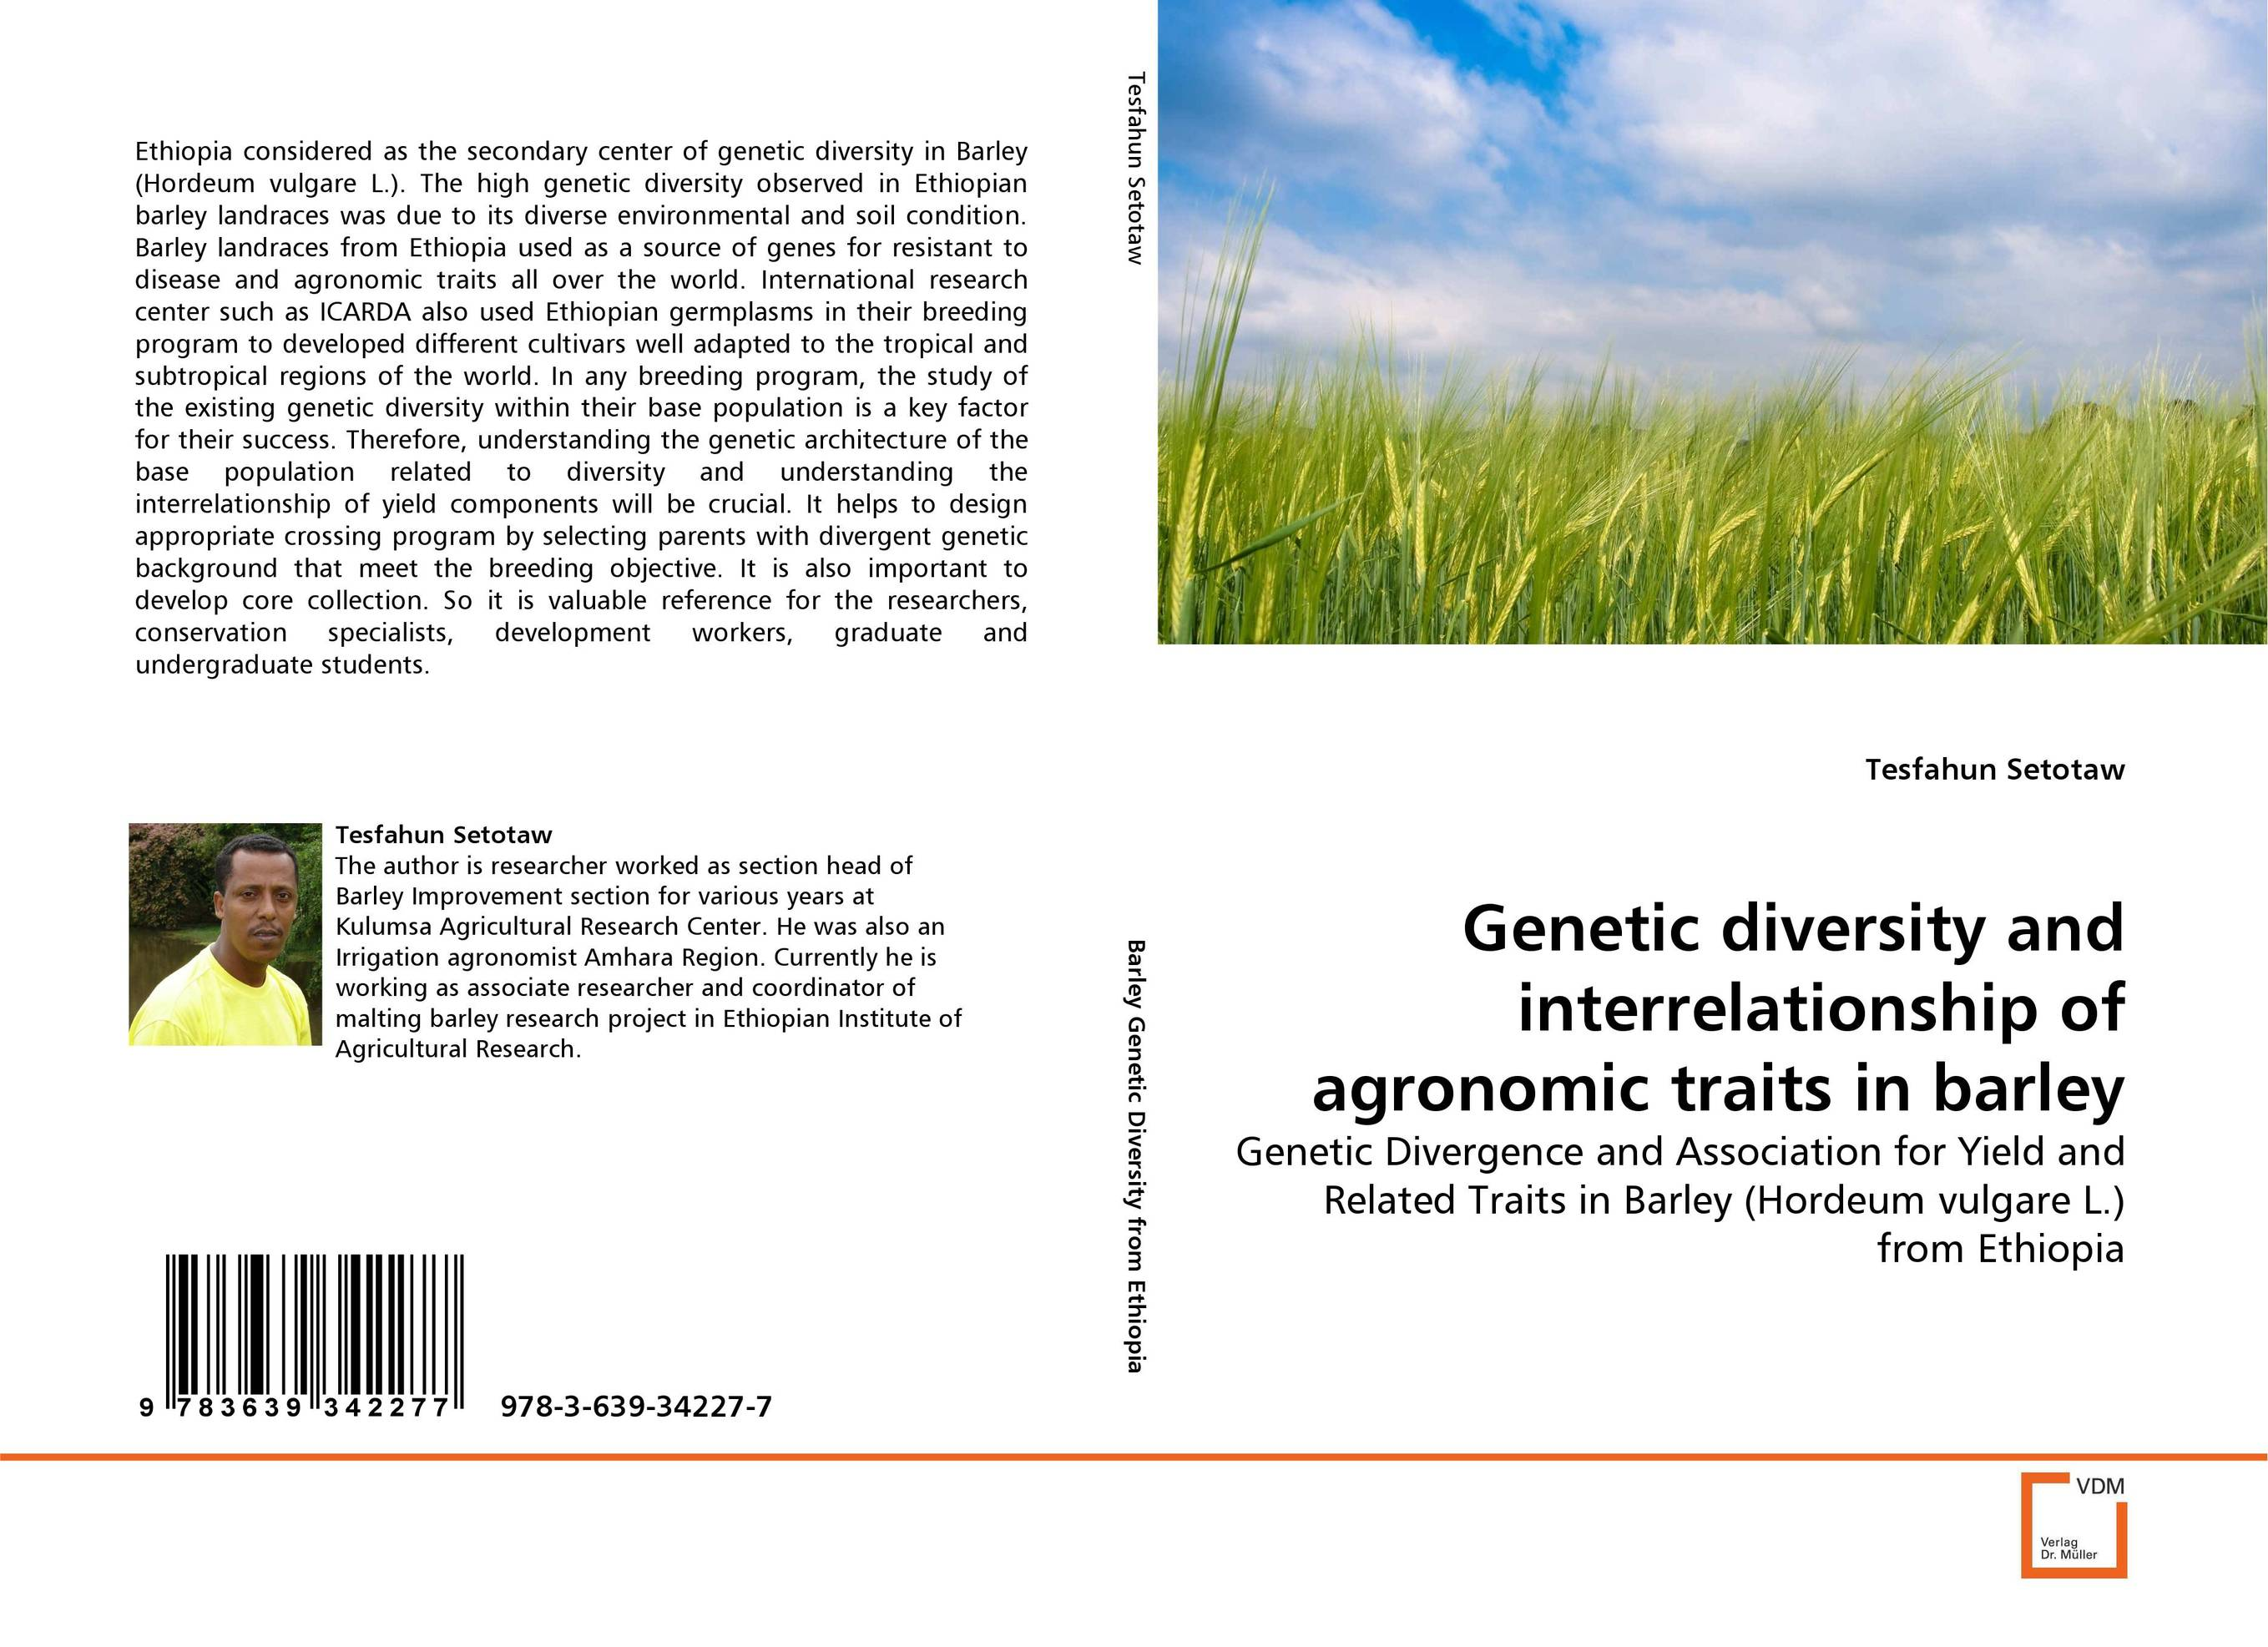 Genetic diversity and interrelationship of agronomic traits in barley butterflies in the barley